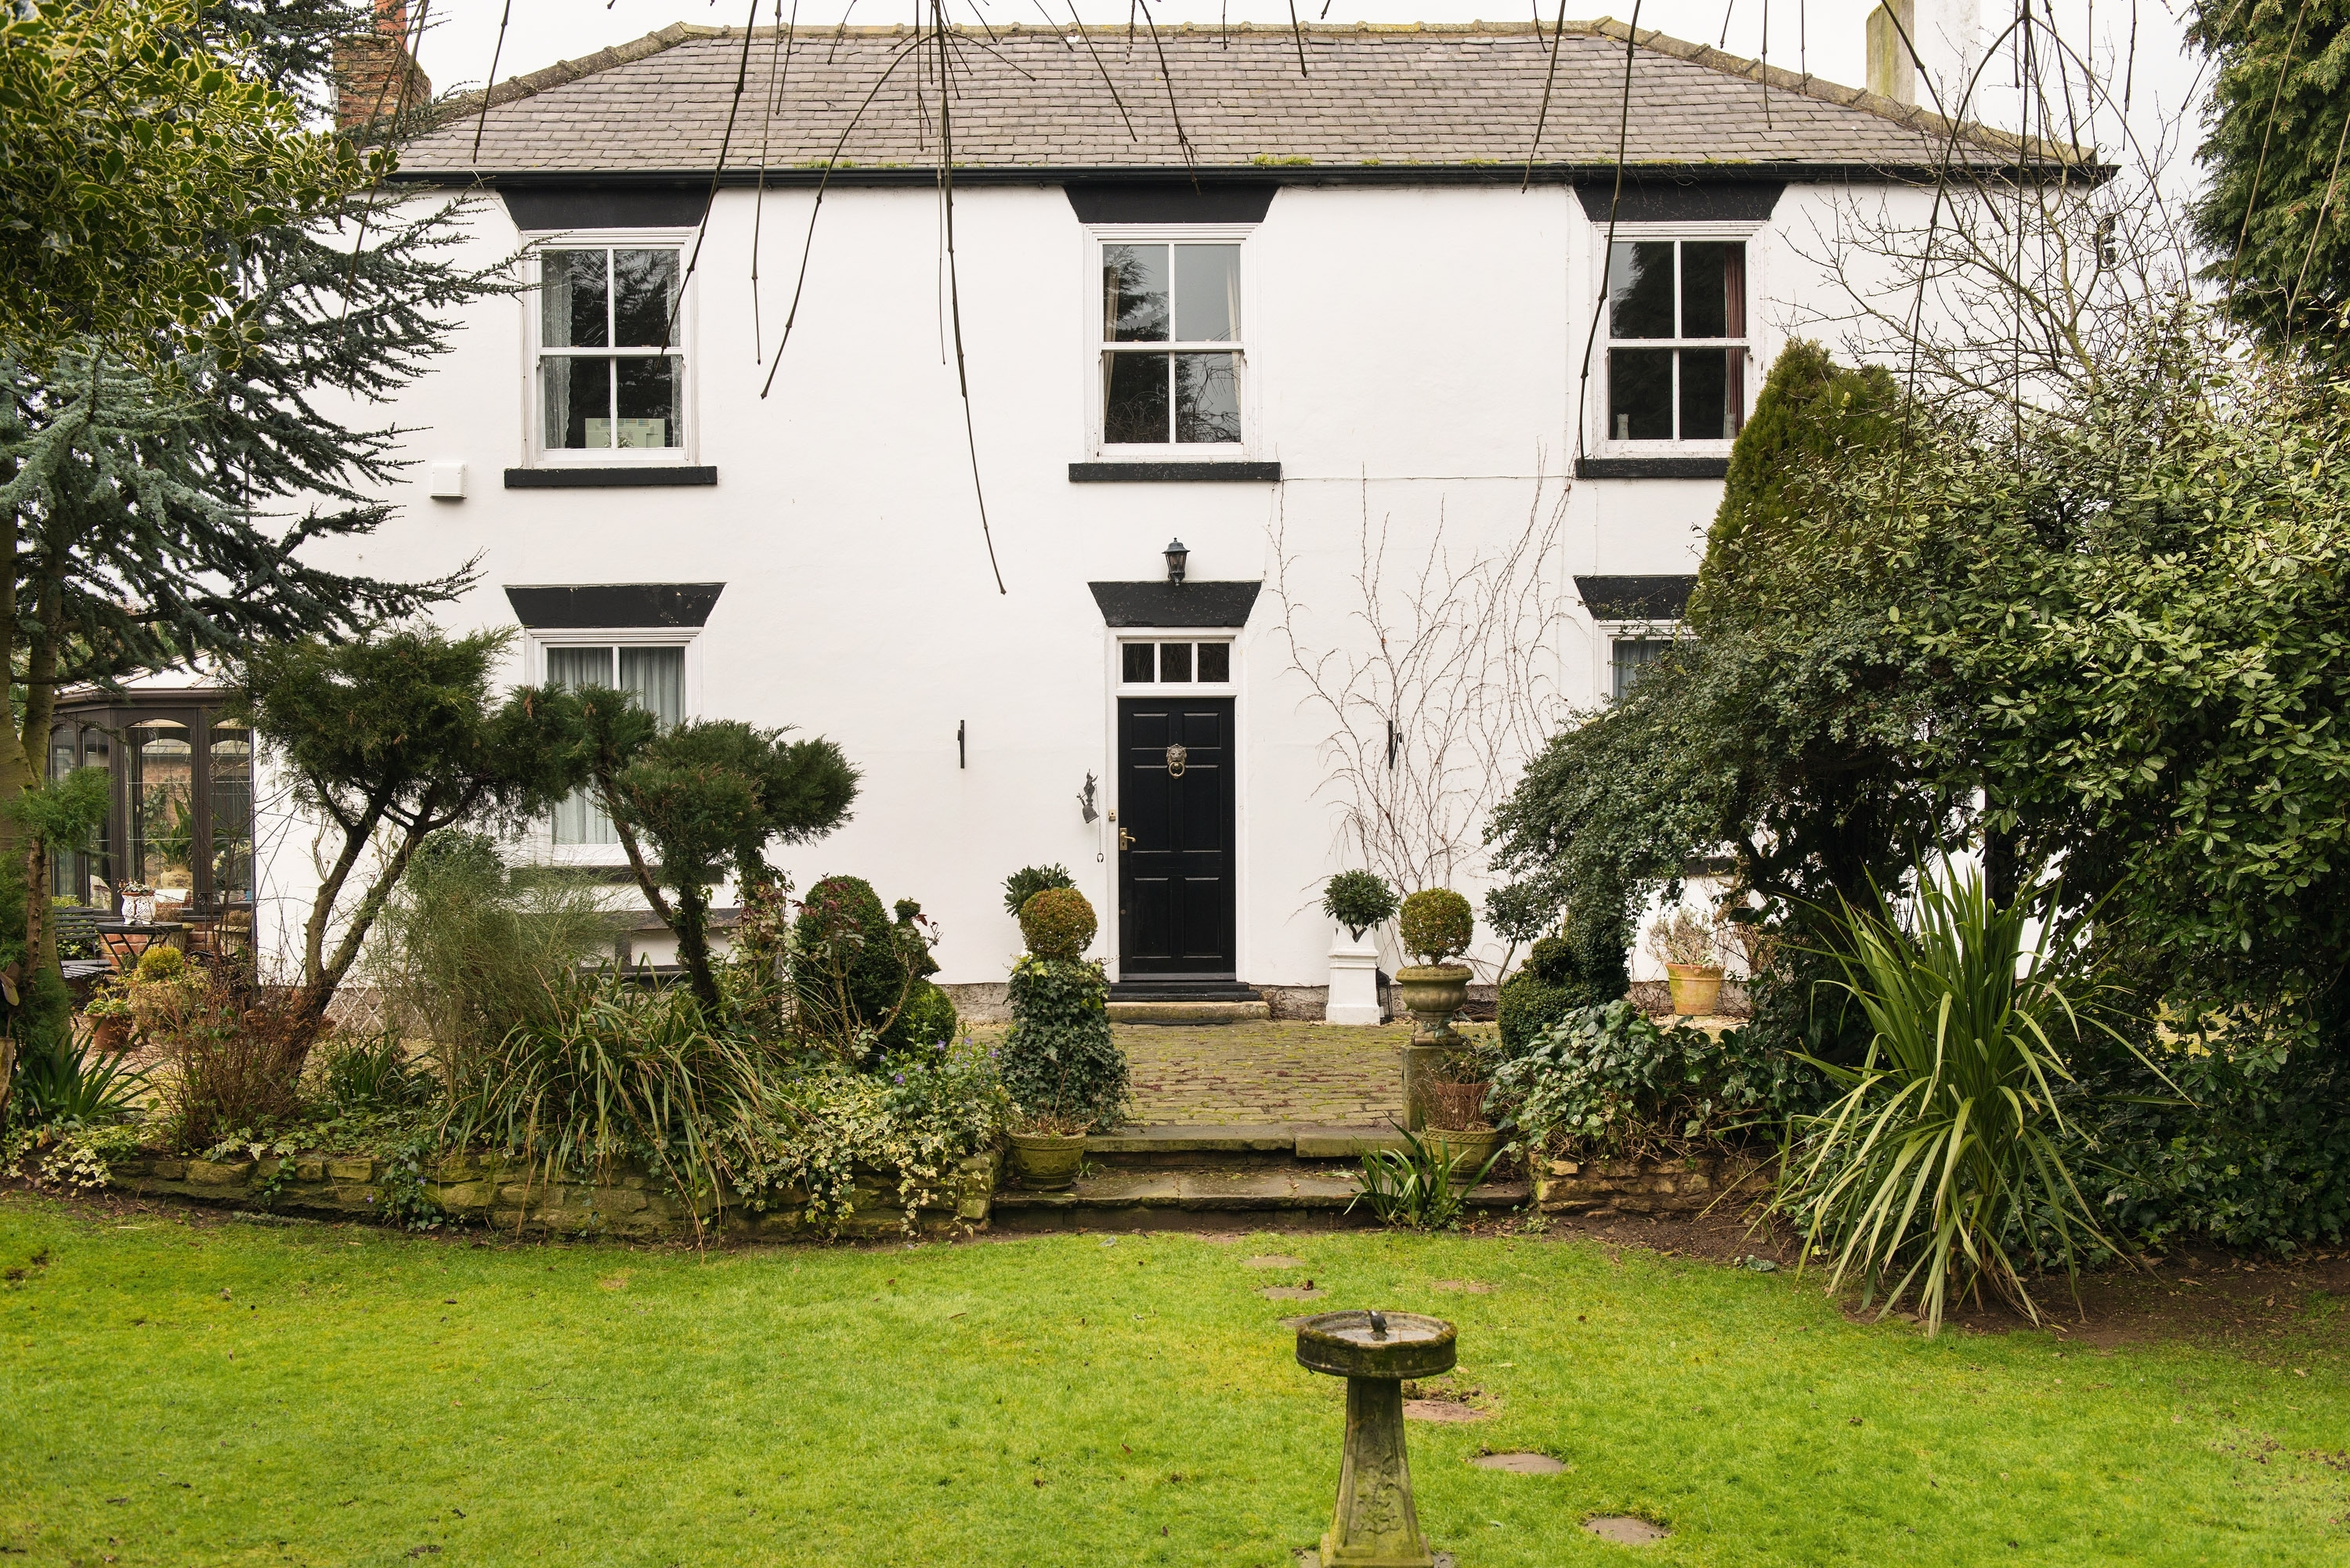 A Beginner's Guide To Rendering Walls   Real Homes within Garden House Marple Planning Permission